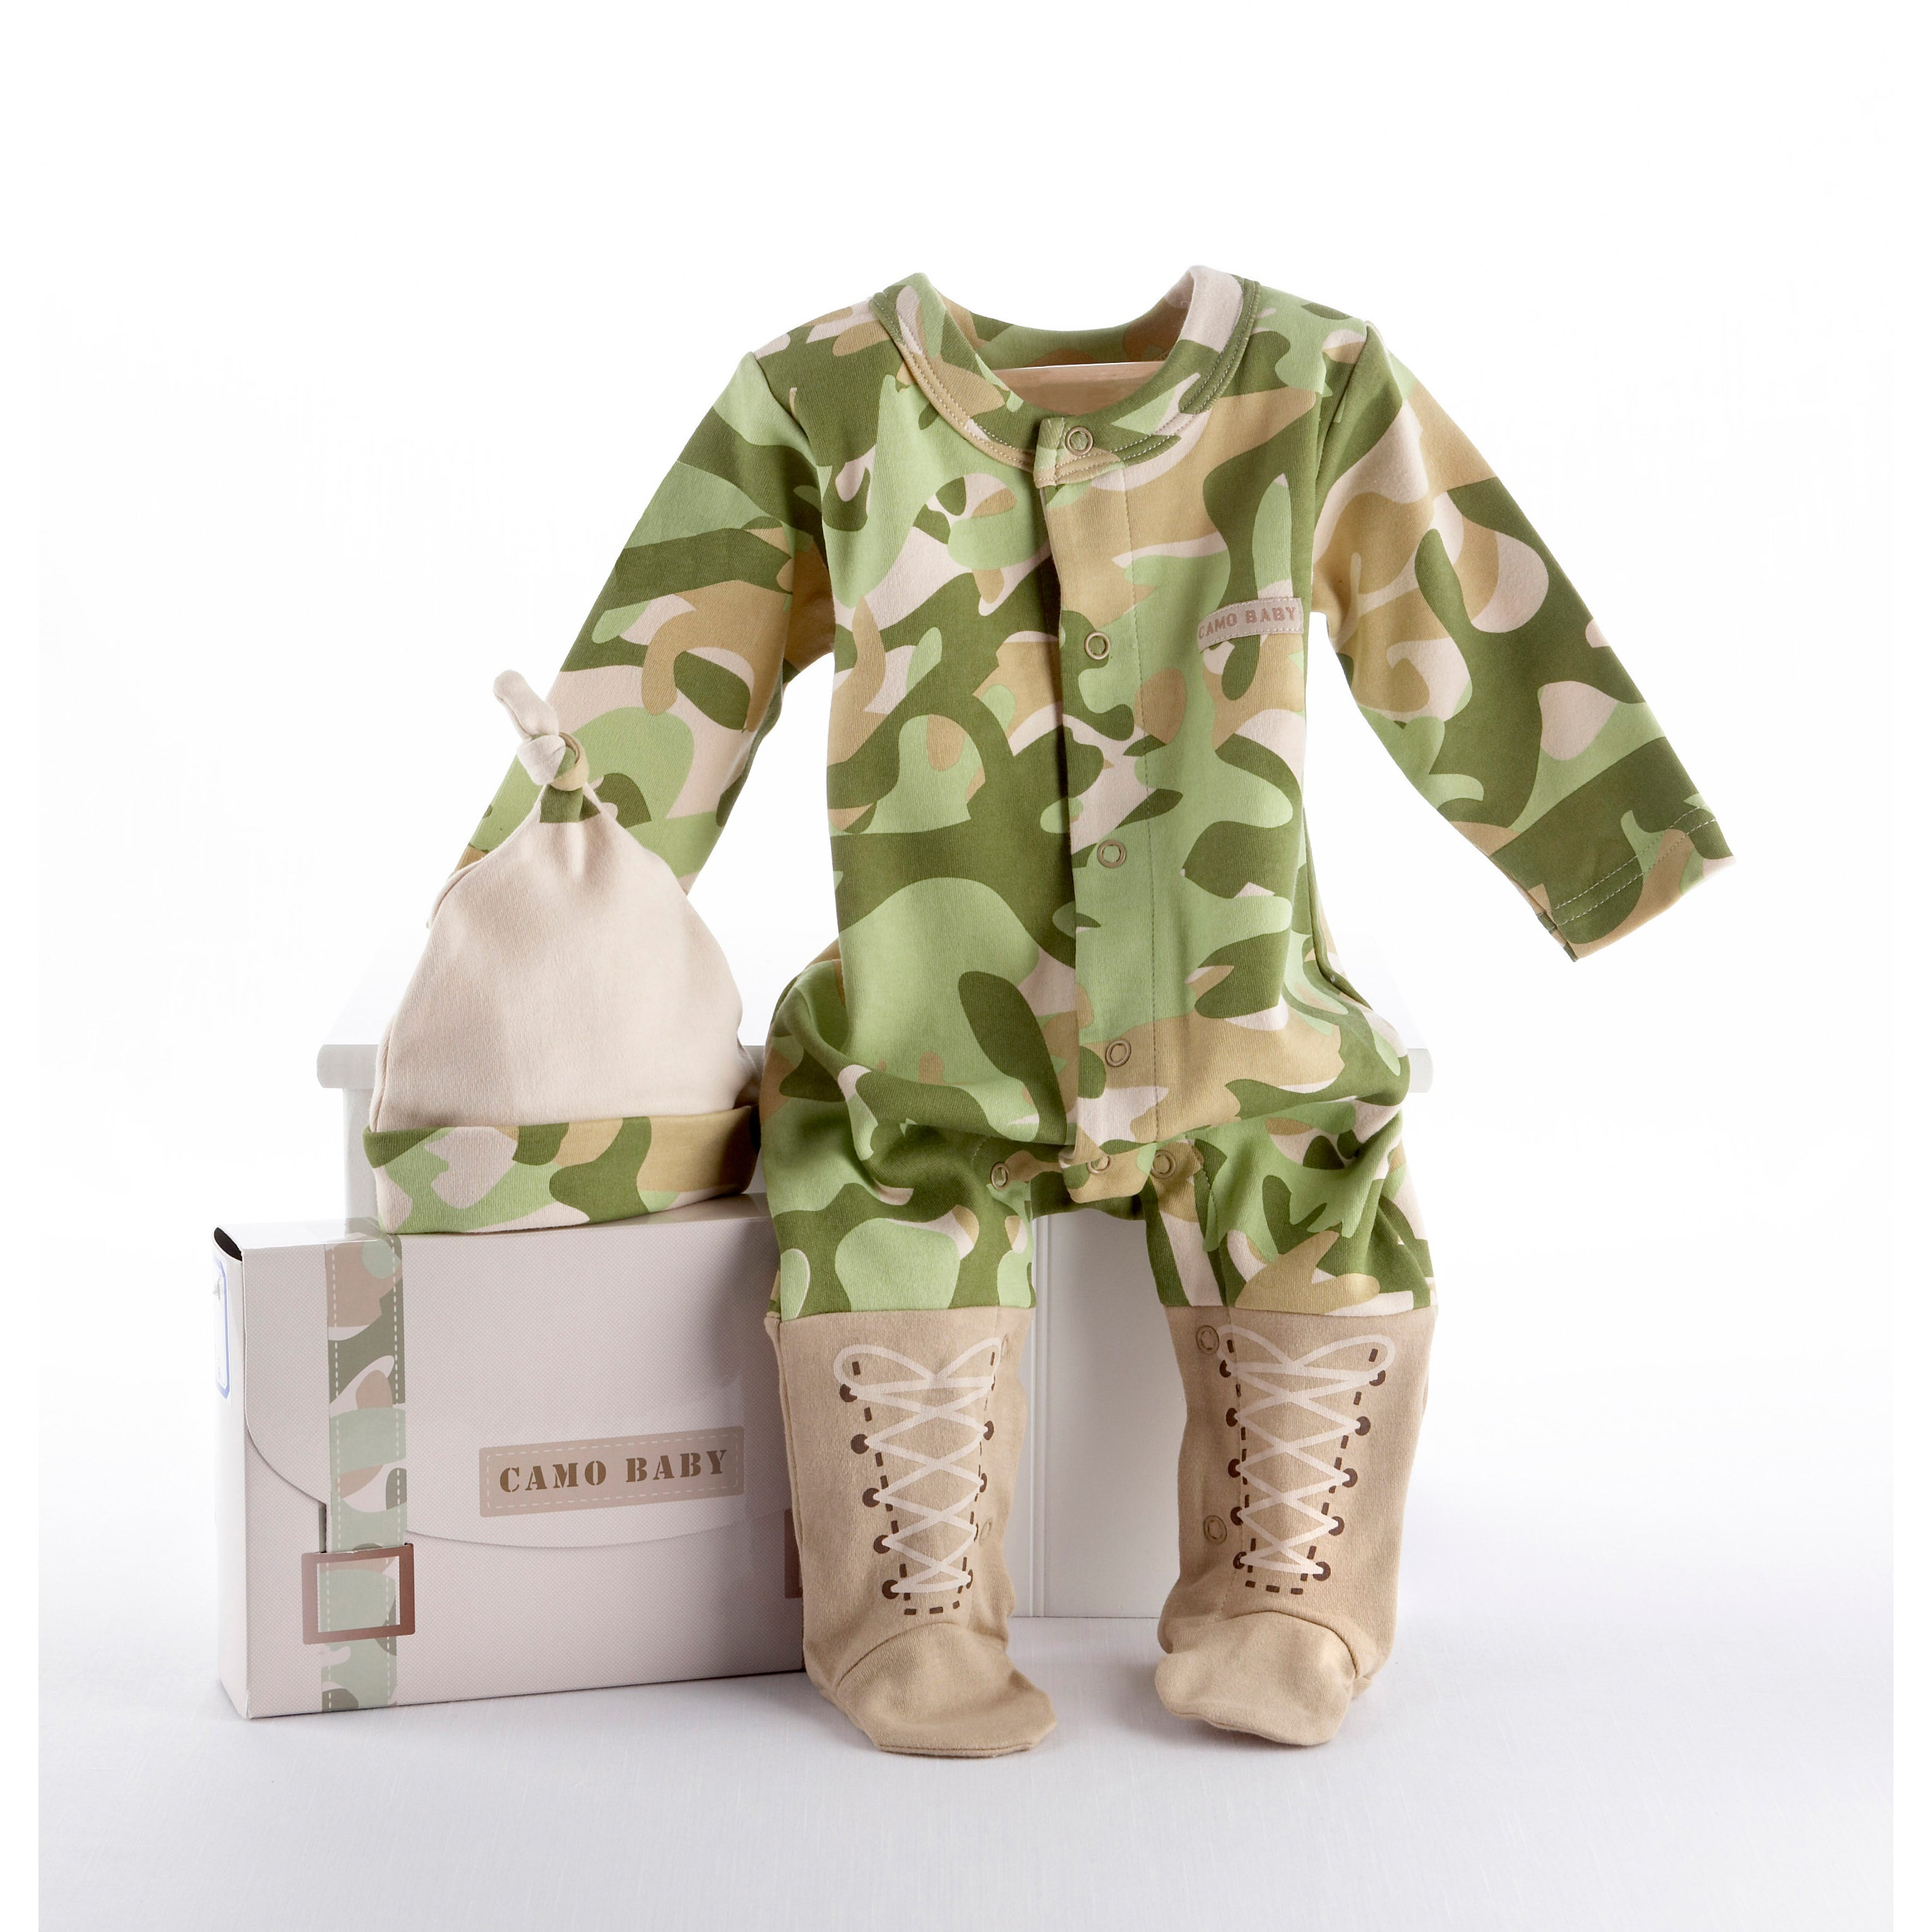 Baby Aspen Big Dreamzzz Baby Camo 2-piece Layette Set - Thumbnail 0